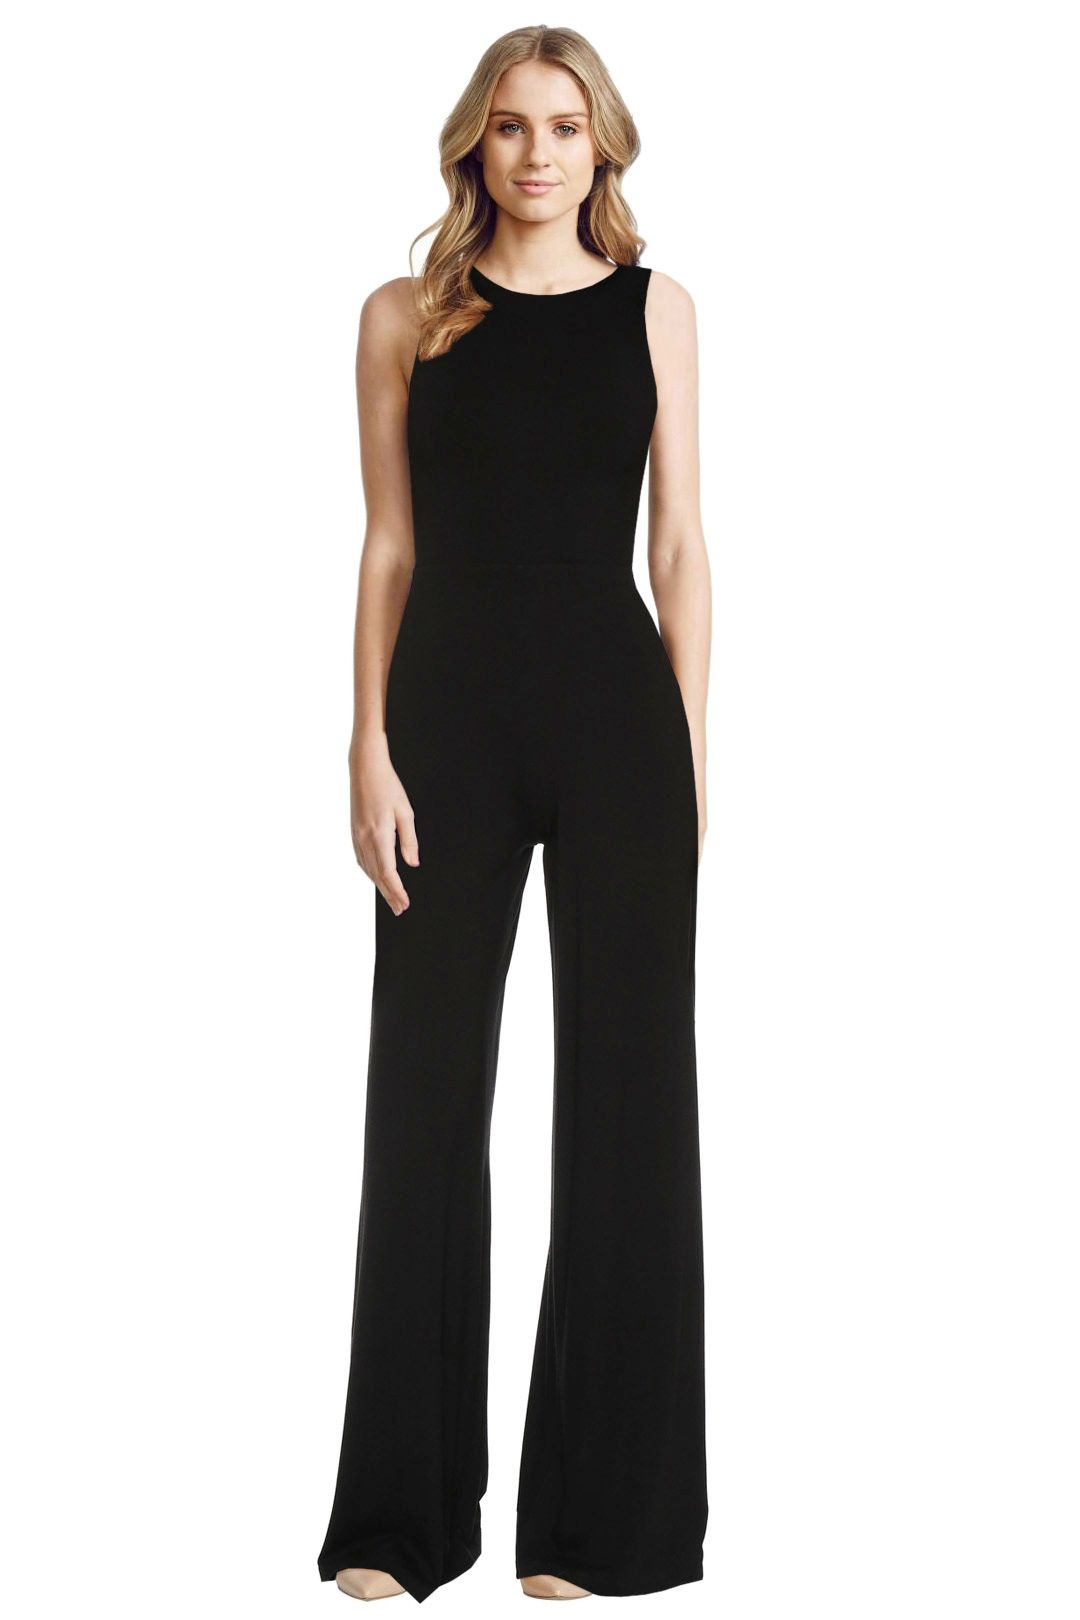 Alice and Olivia - Judee Racer Back Jumpsuit - Front